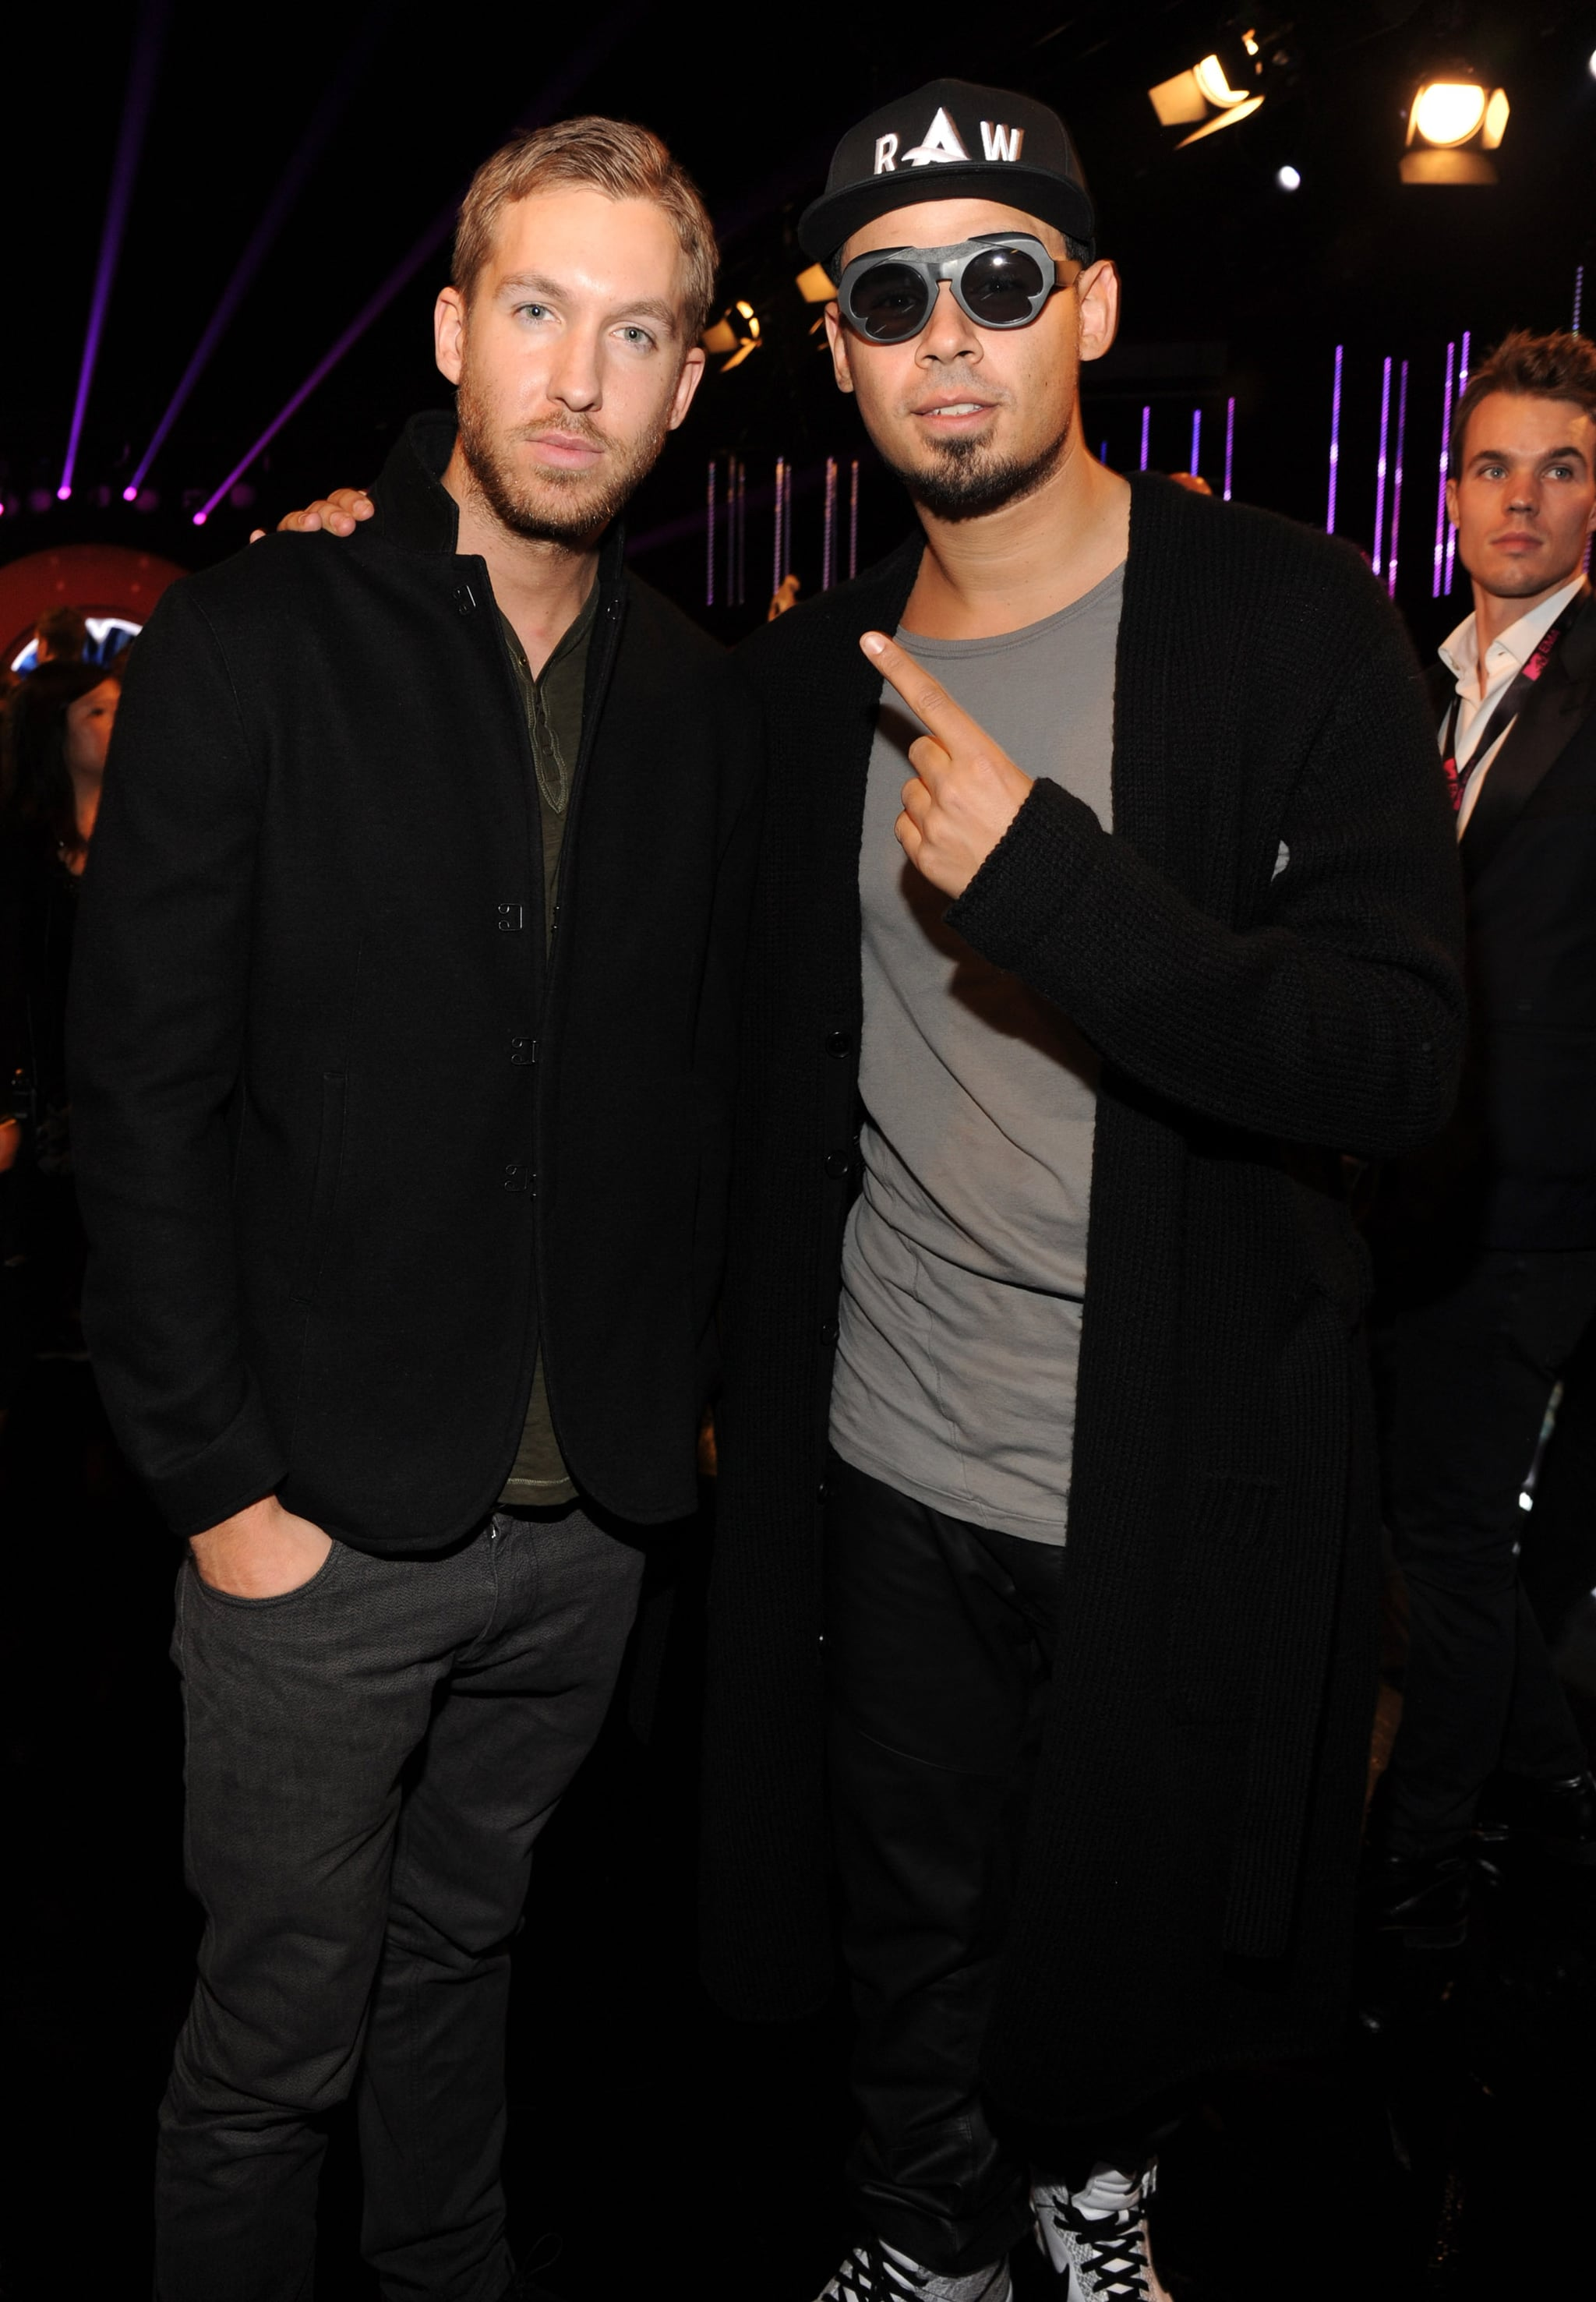 Calvin Harris and DJ Afrojack posed together during the show.